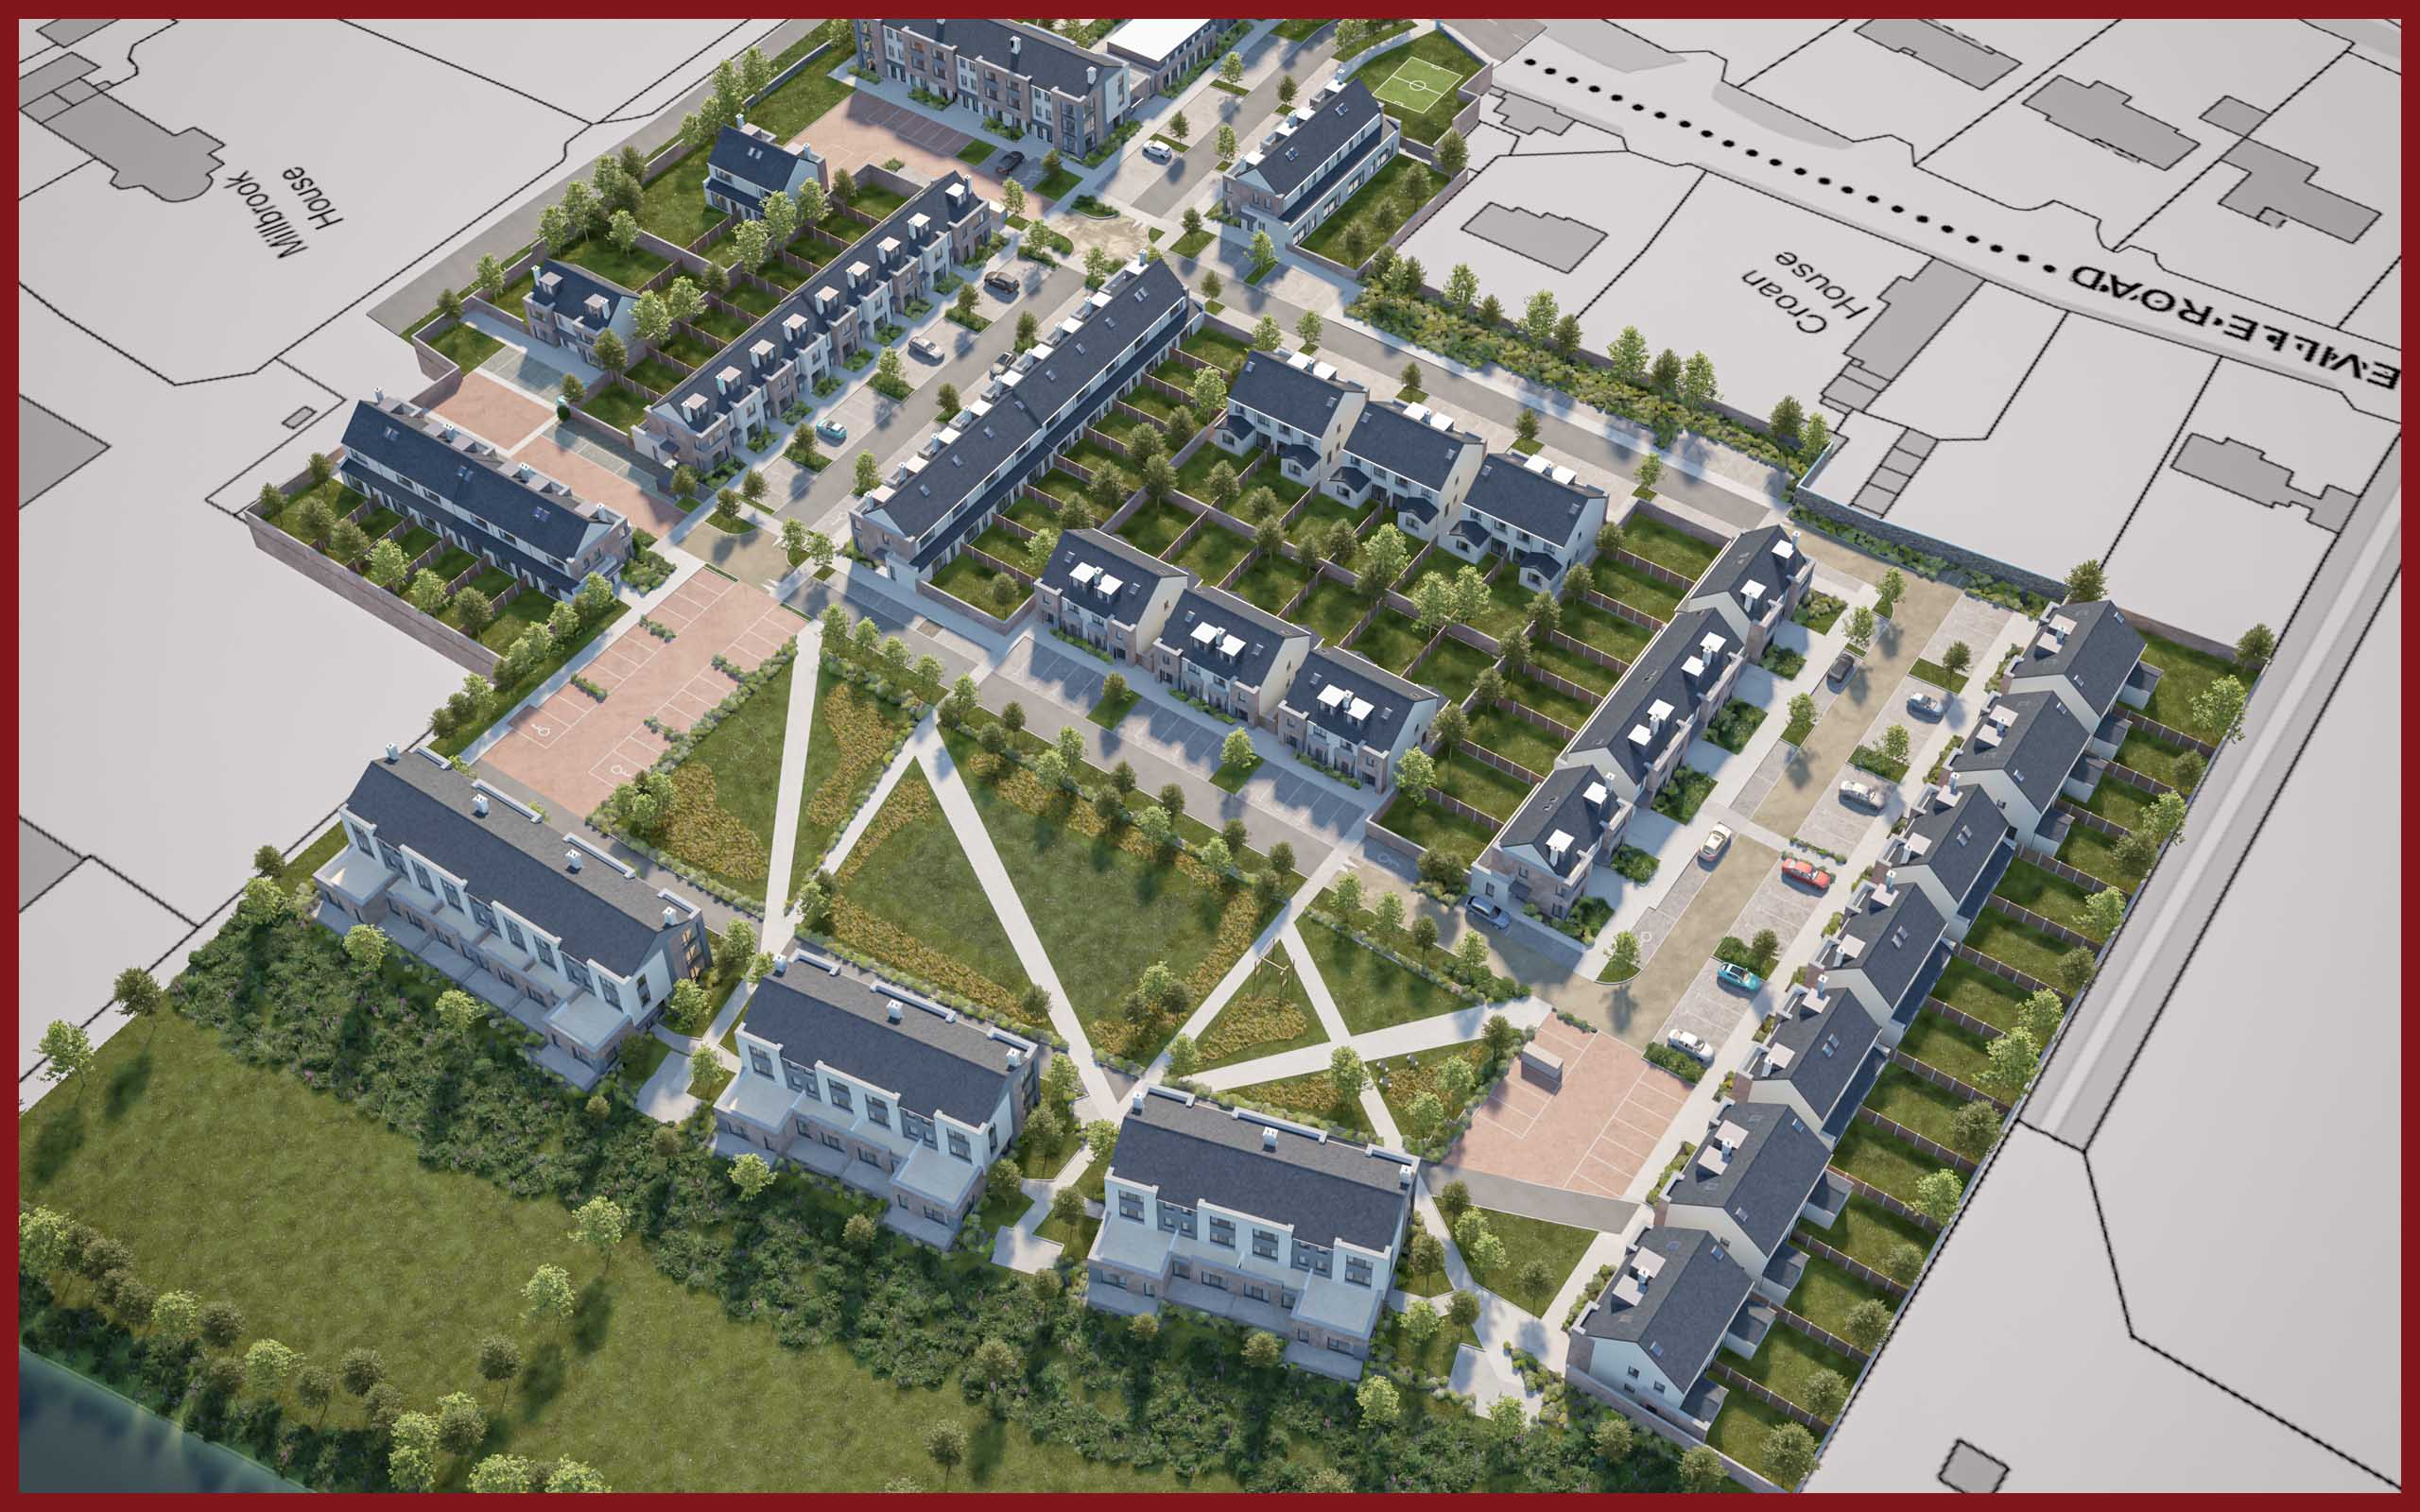 3D Site Plans of Residential Development